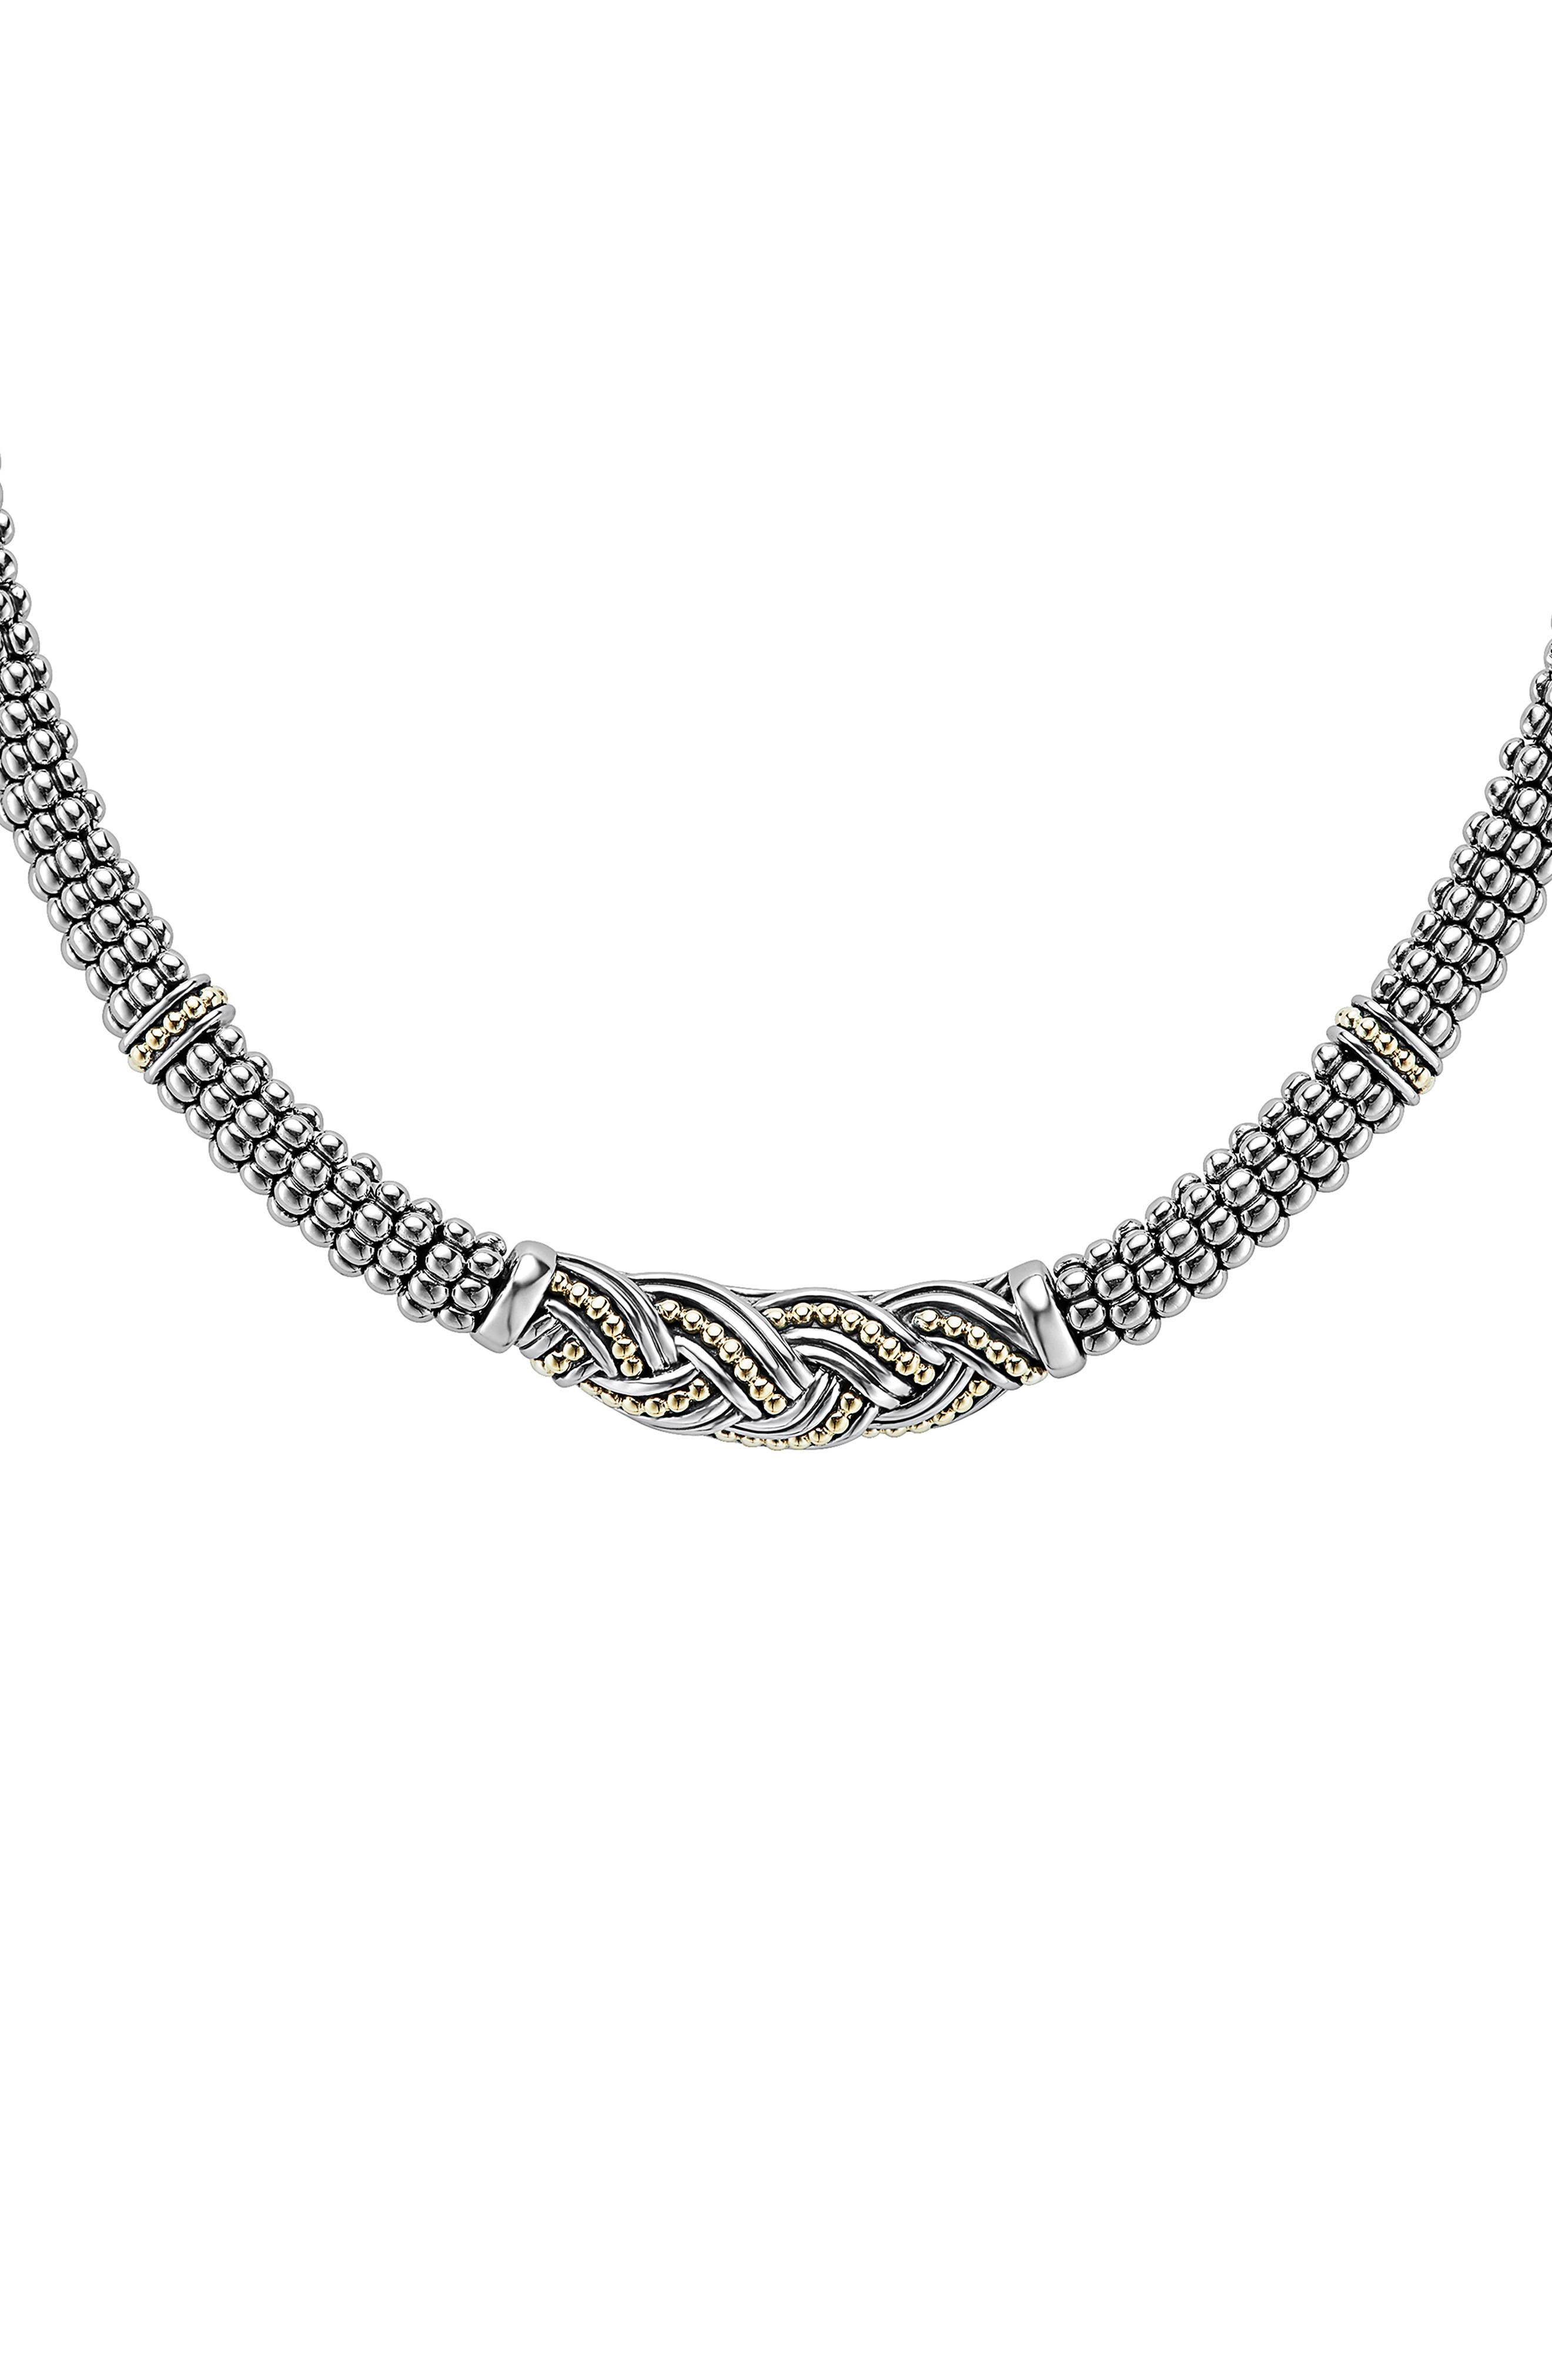 Torsade Rope Necklace,                         Main,                         color, SILVER/ GOLD